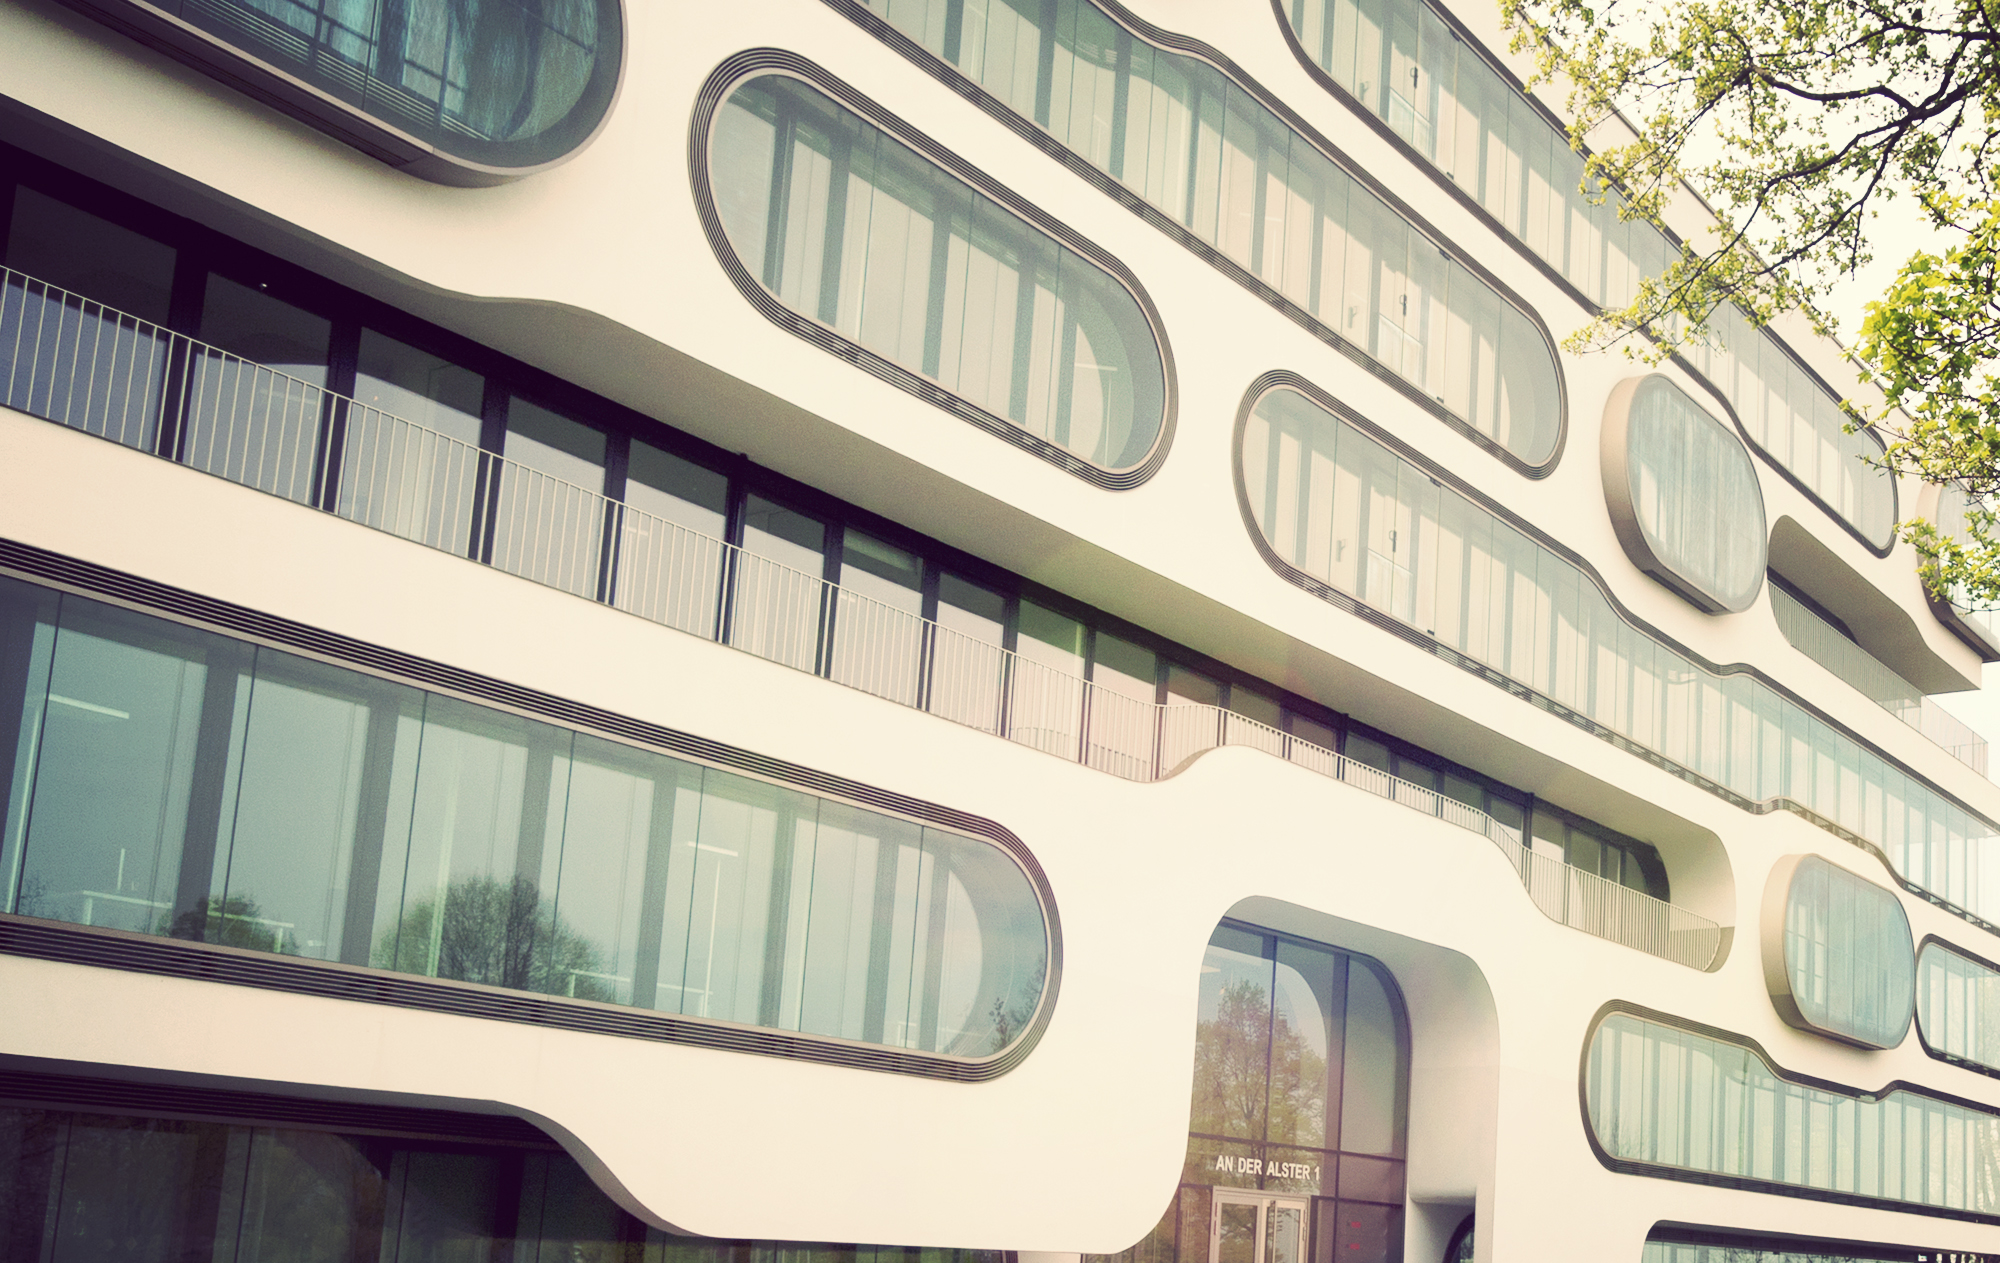 Ada1 by J. Mayer H. Building and Urbanism